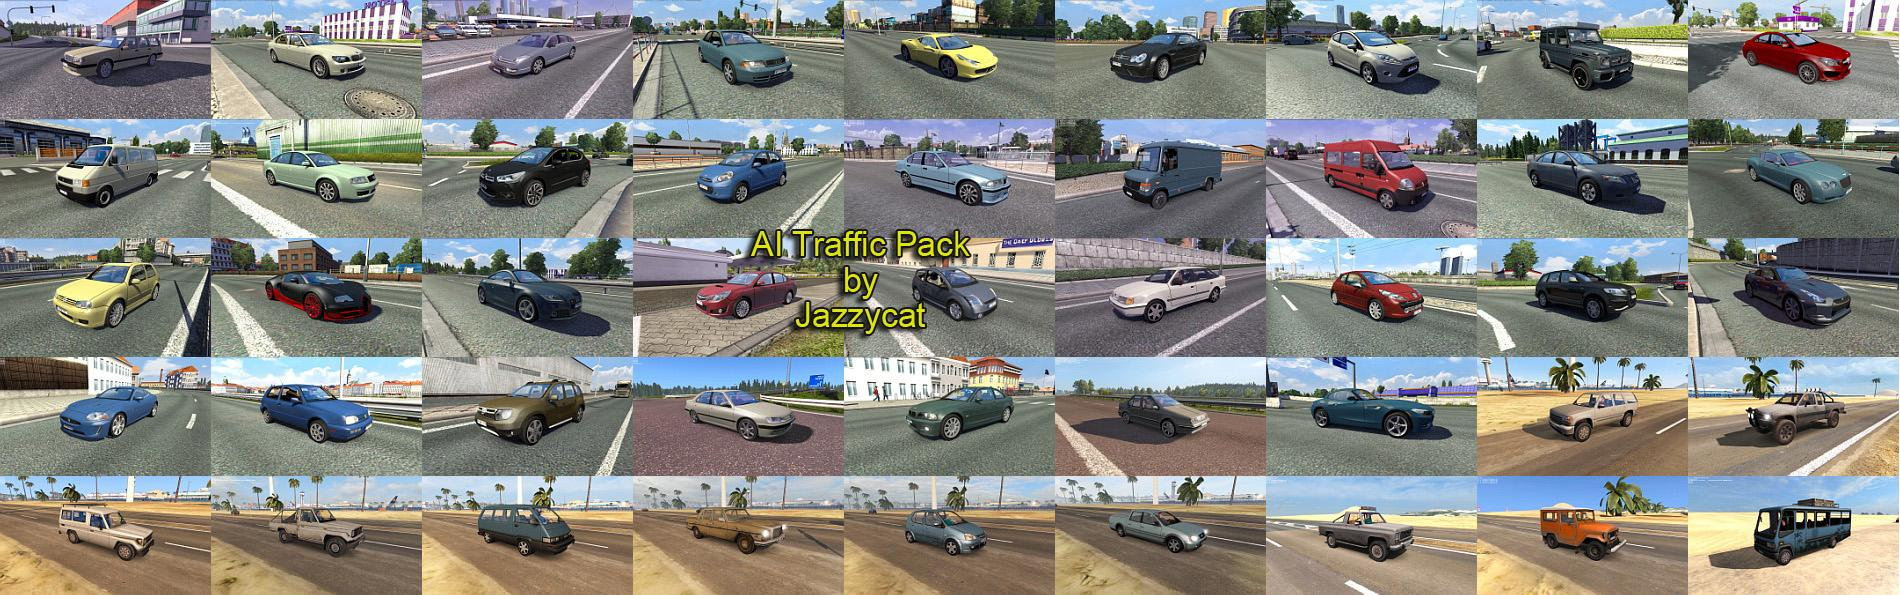 ai-traffic-pack-by-jazzycat-v3-6_5